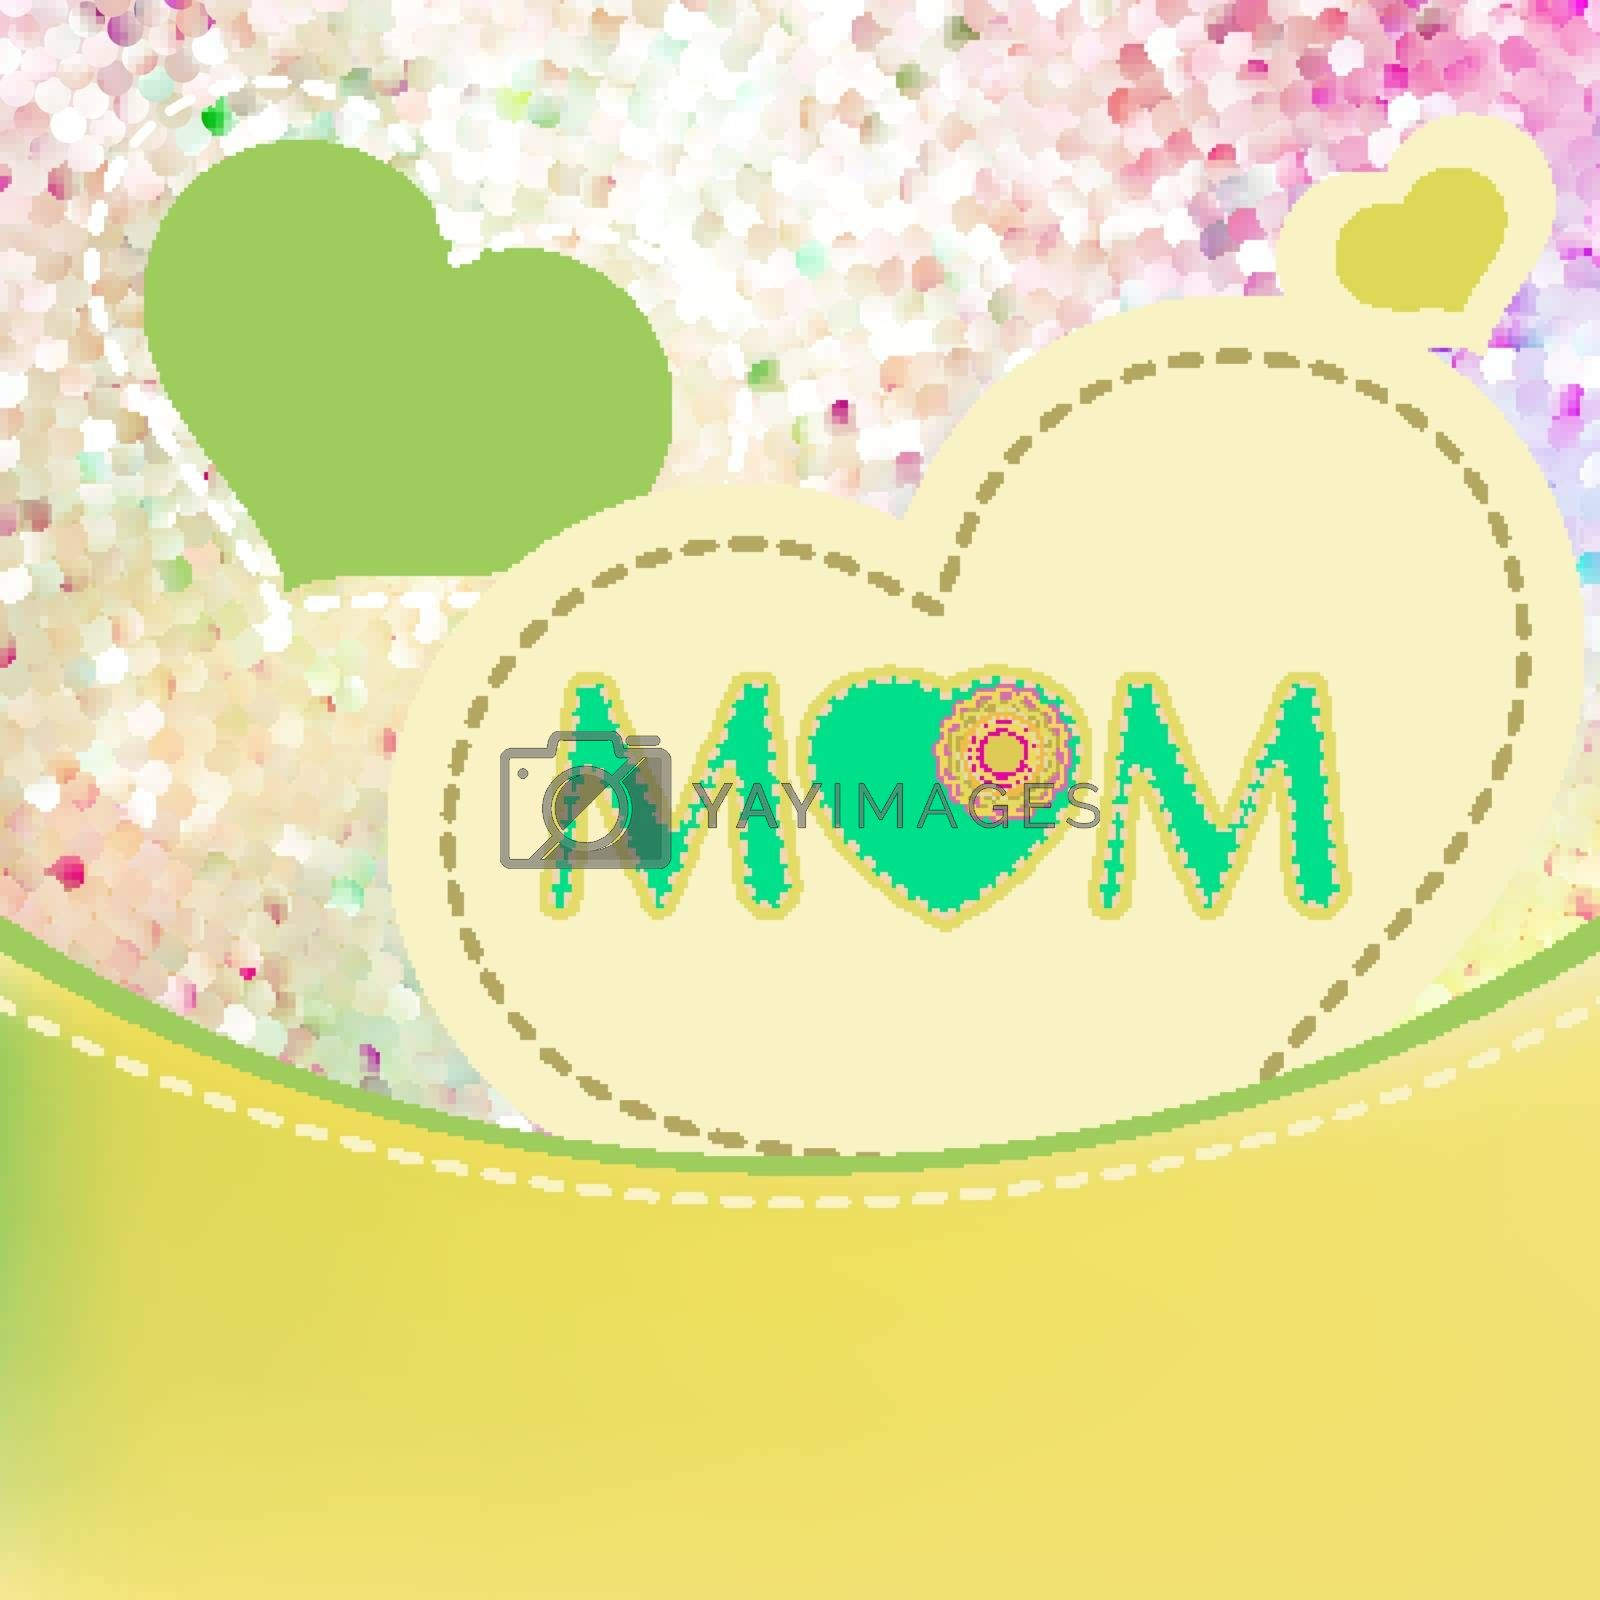 Happy Mother's Day. EPS 10 vector file included